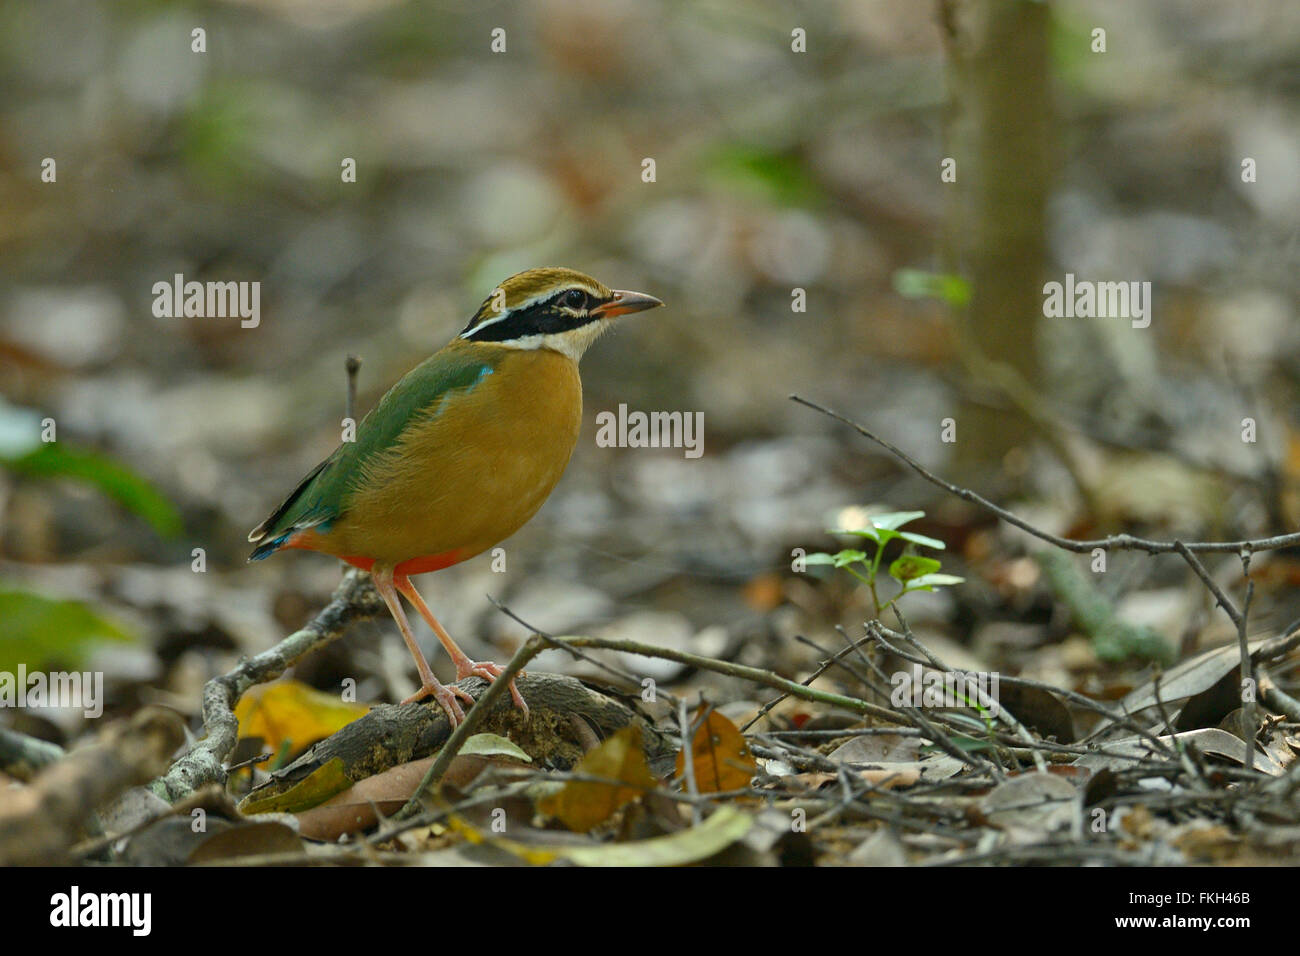 Indian pitta (Pitta brachyura) in Wilpattu national park in Sri Lanka - Stock Image